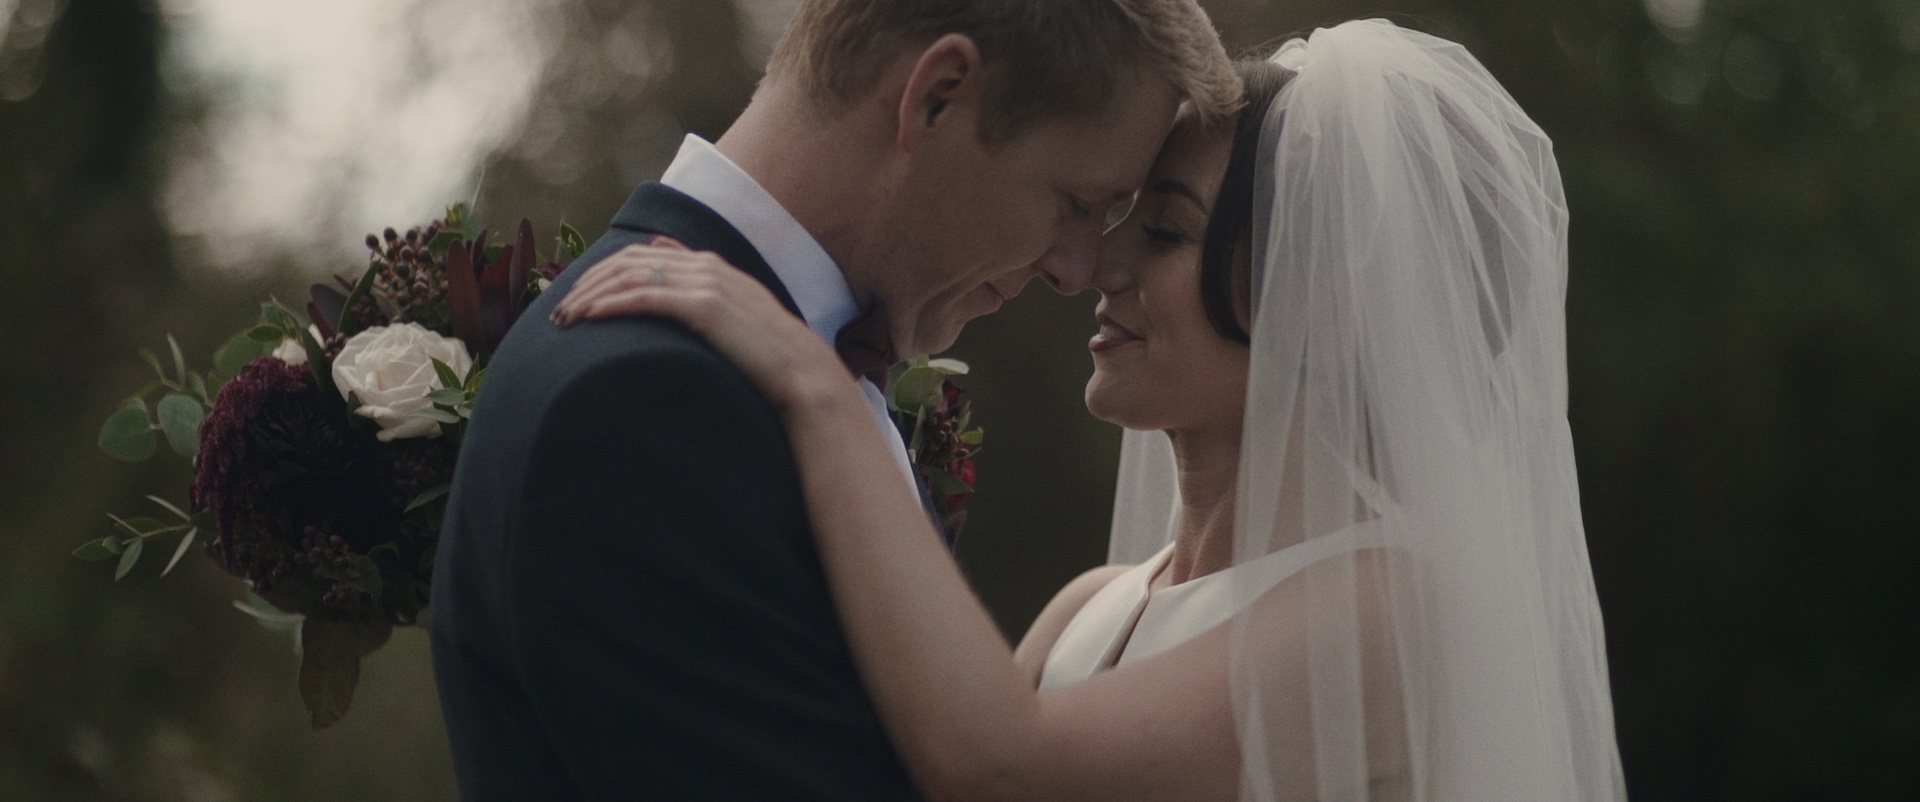 moon+river+wedding+films+north+east+wylam+brewery+videography+newcastle